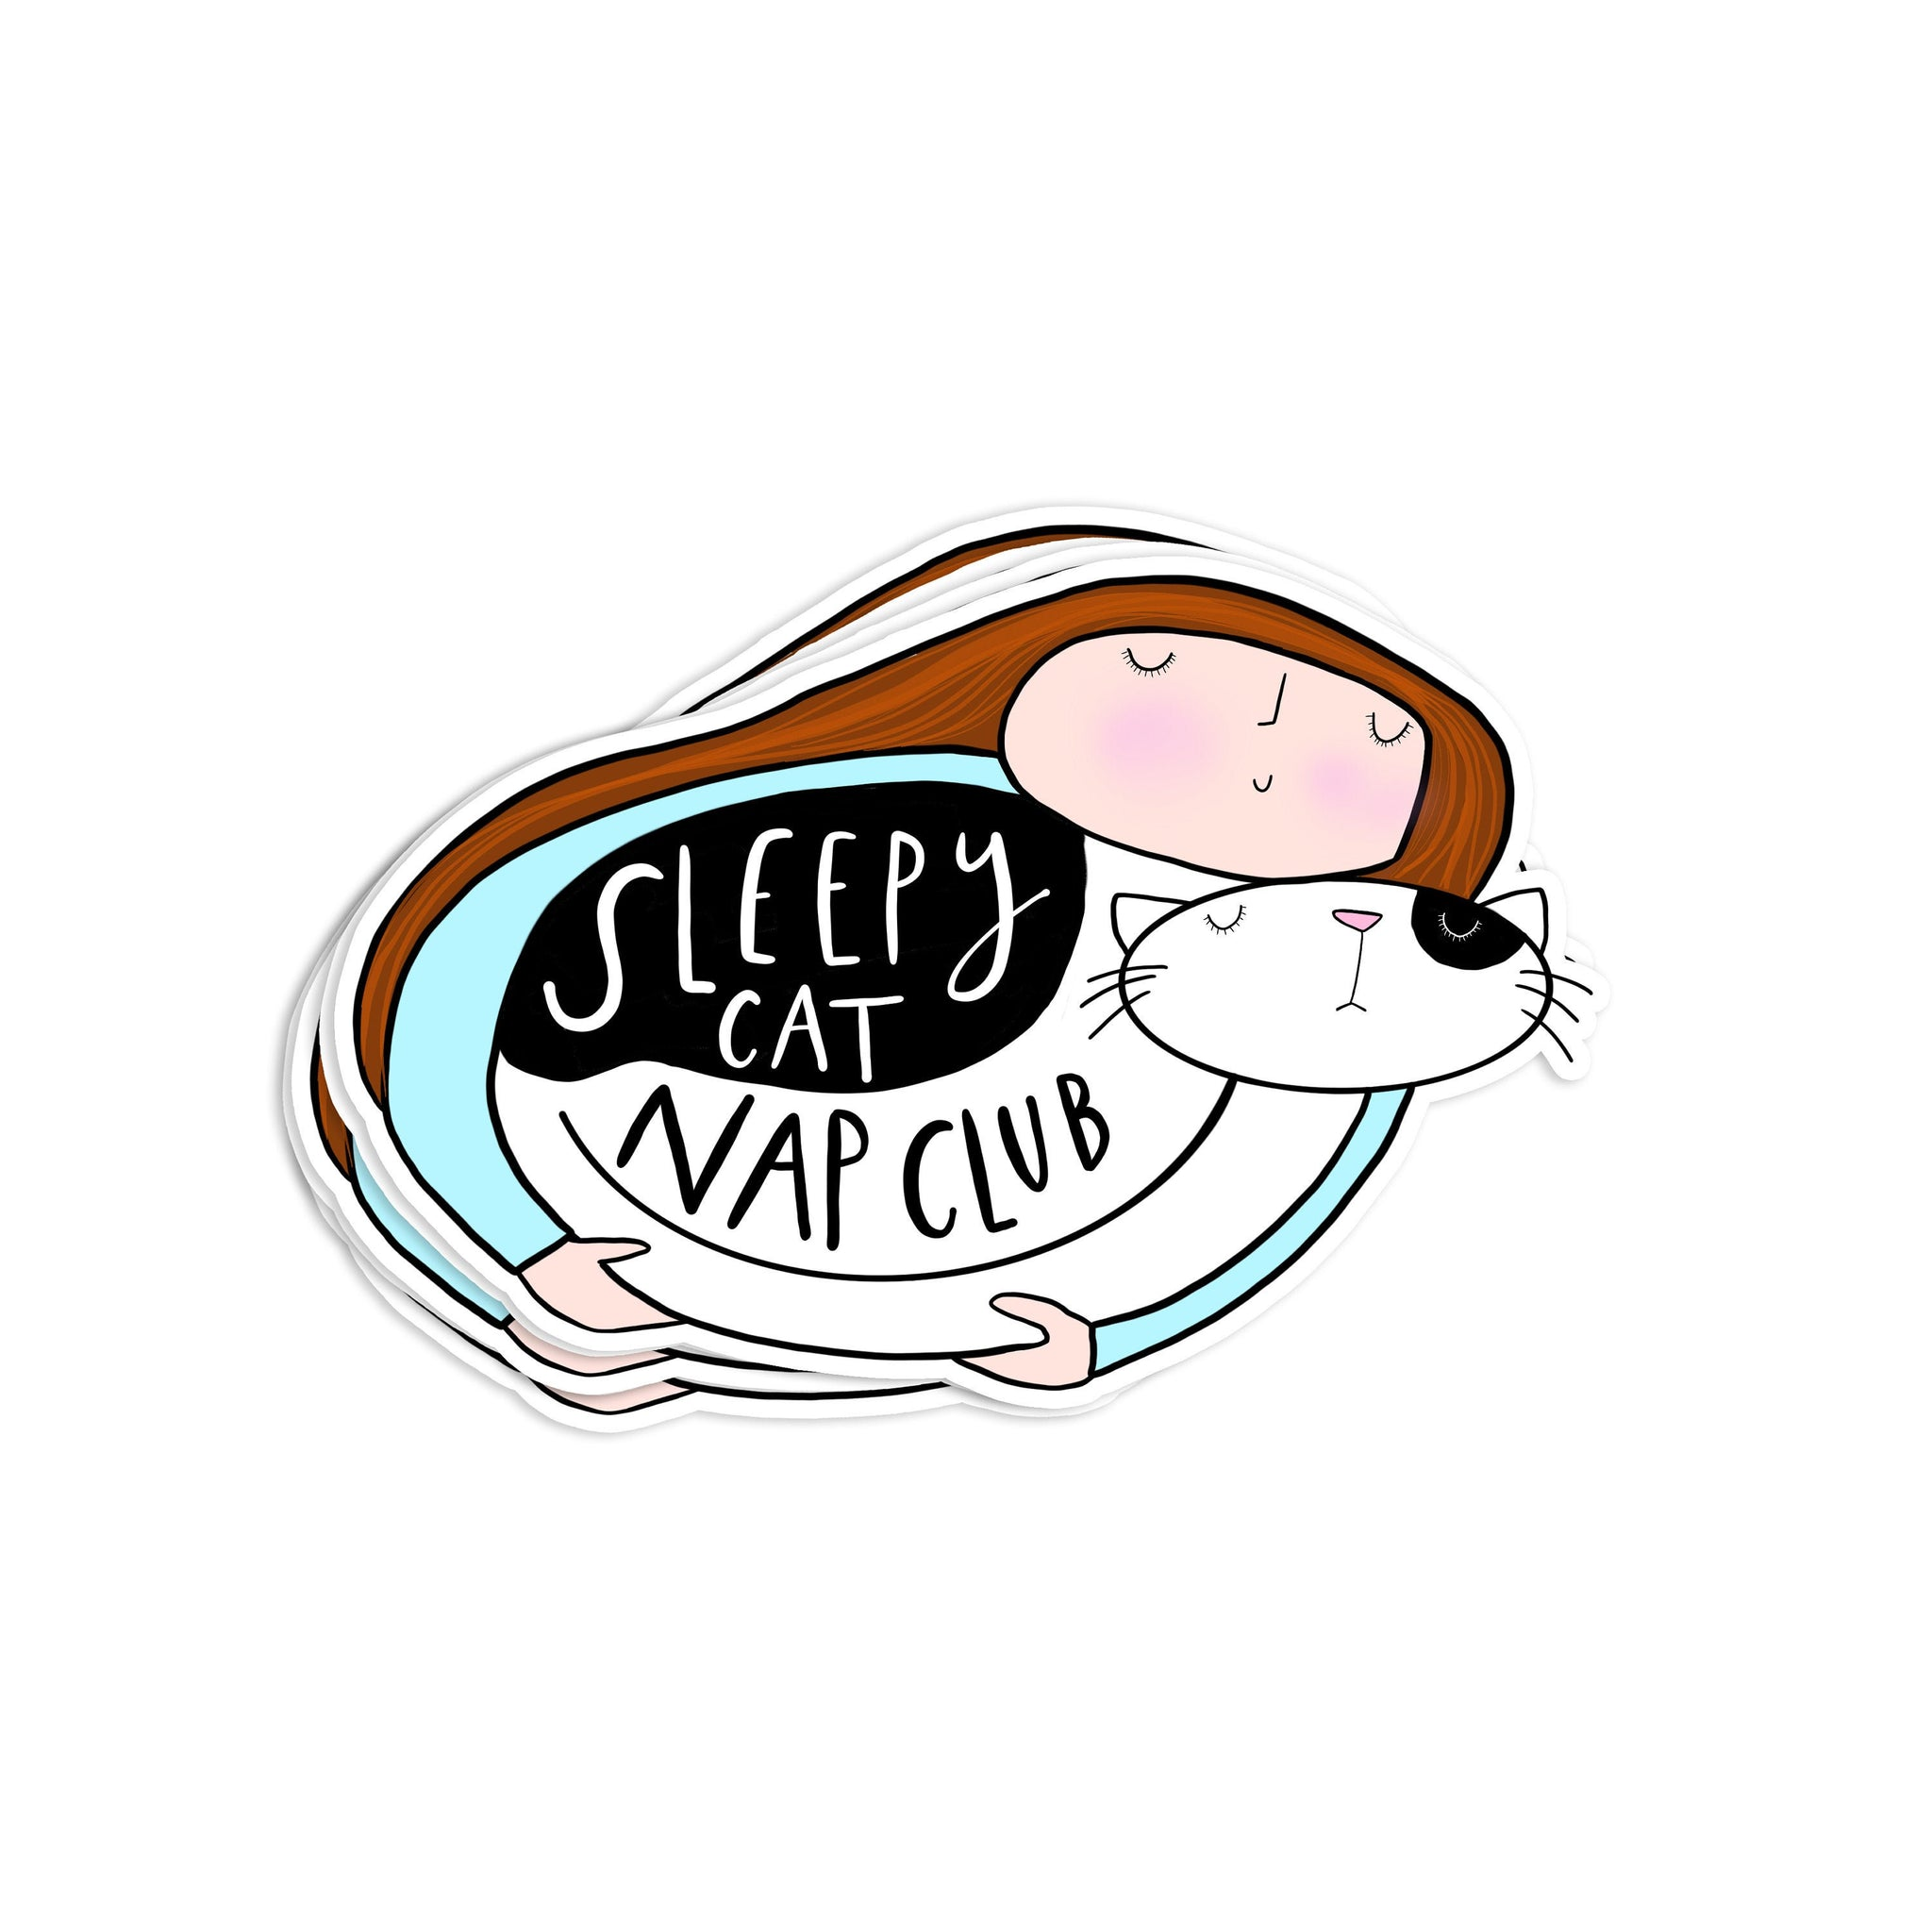 Sleepy cat laptop Sticker - Hofficraft